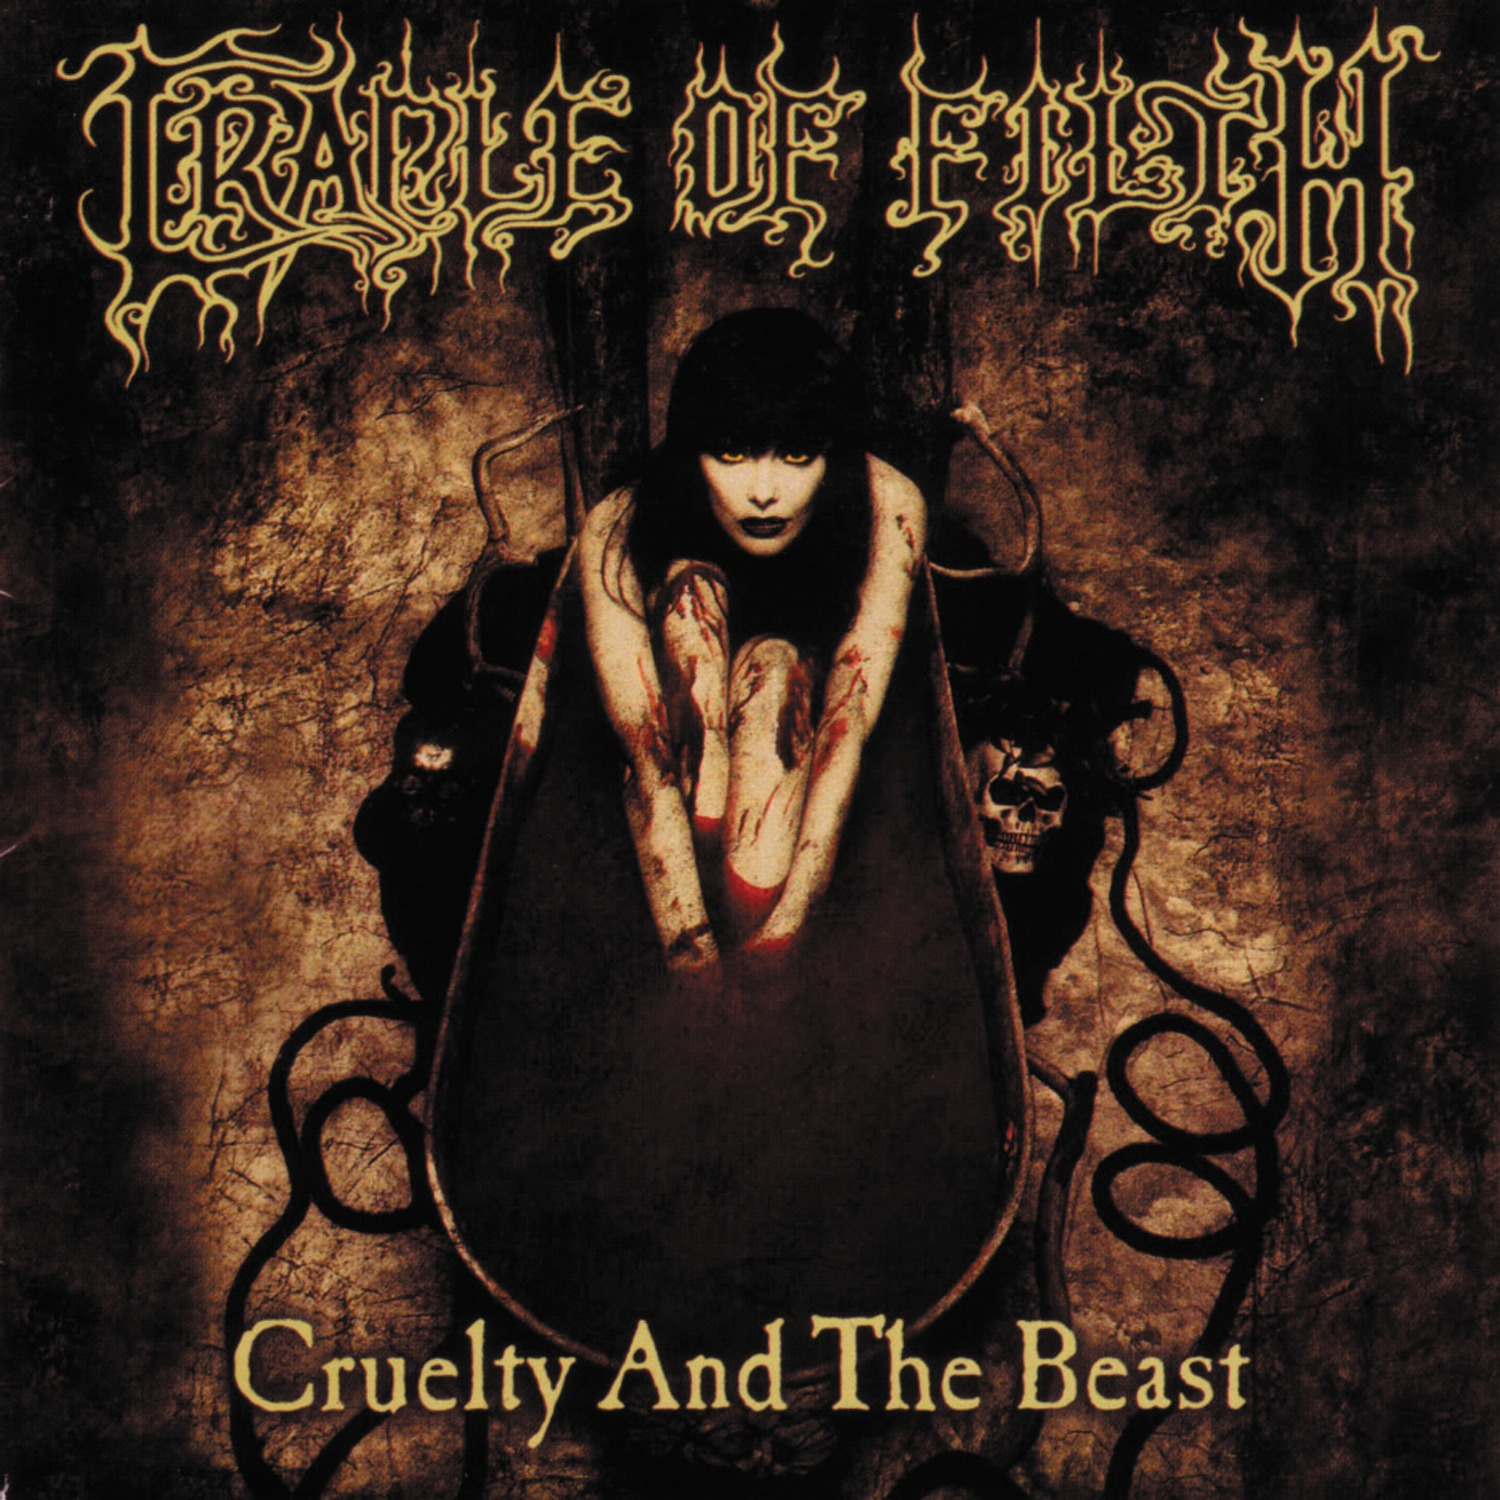 Album or Cover Cradle of Filth Covers Album Review – Cradle of Filth